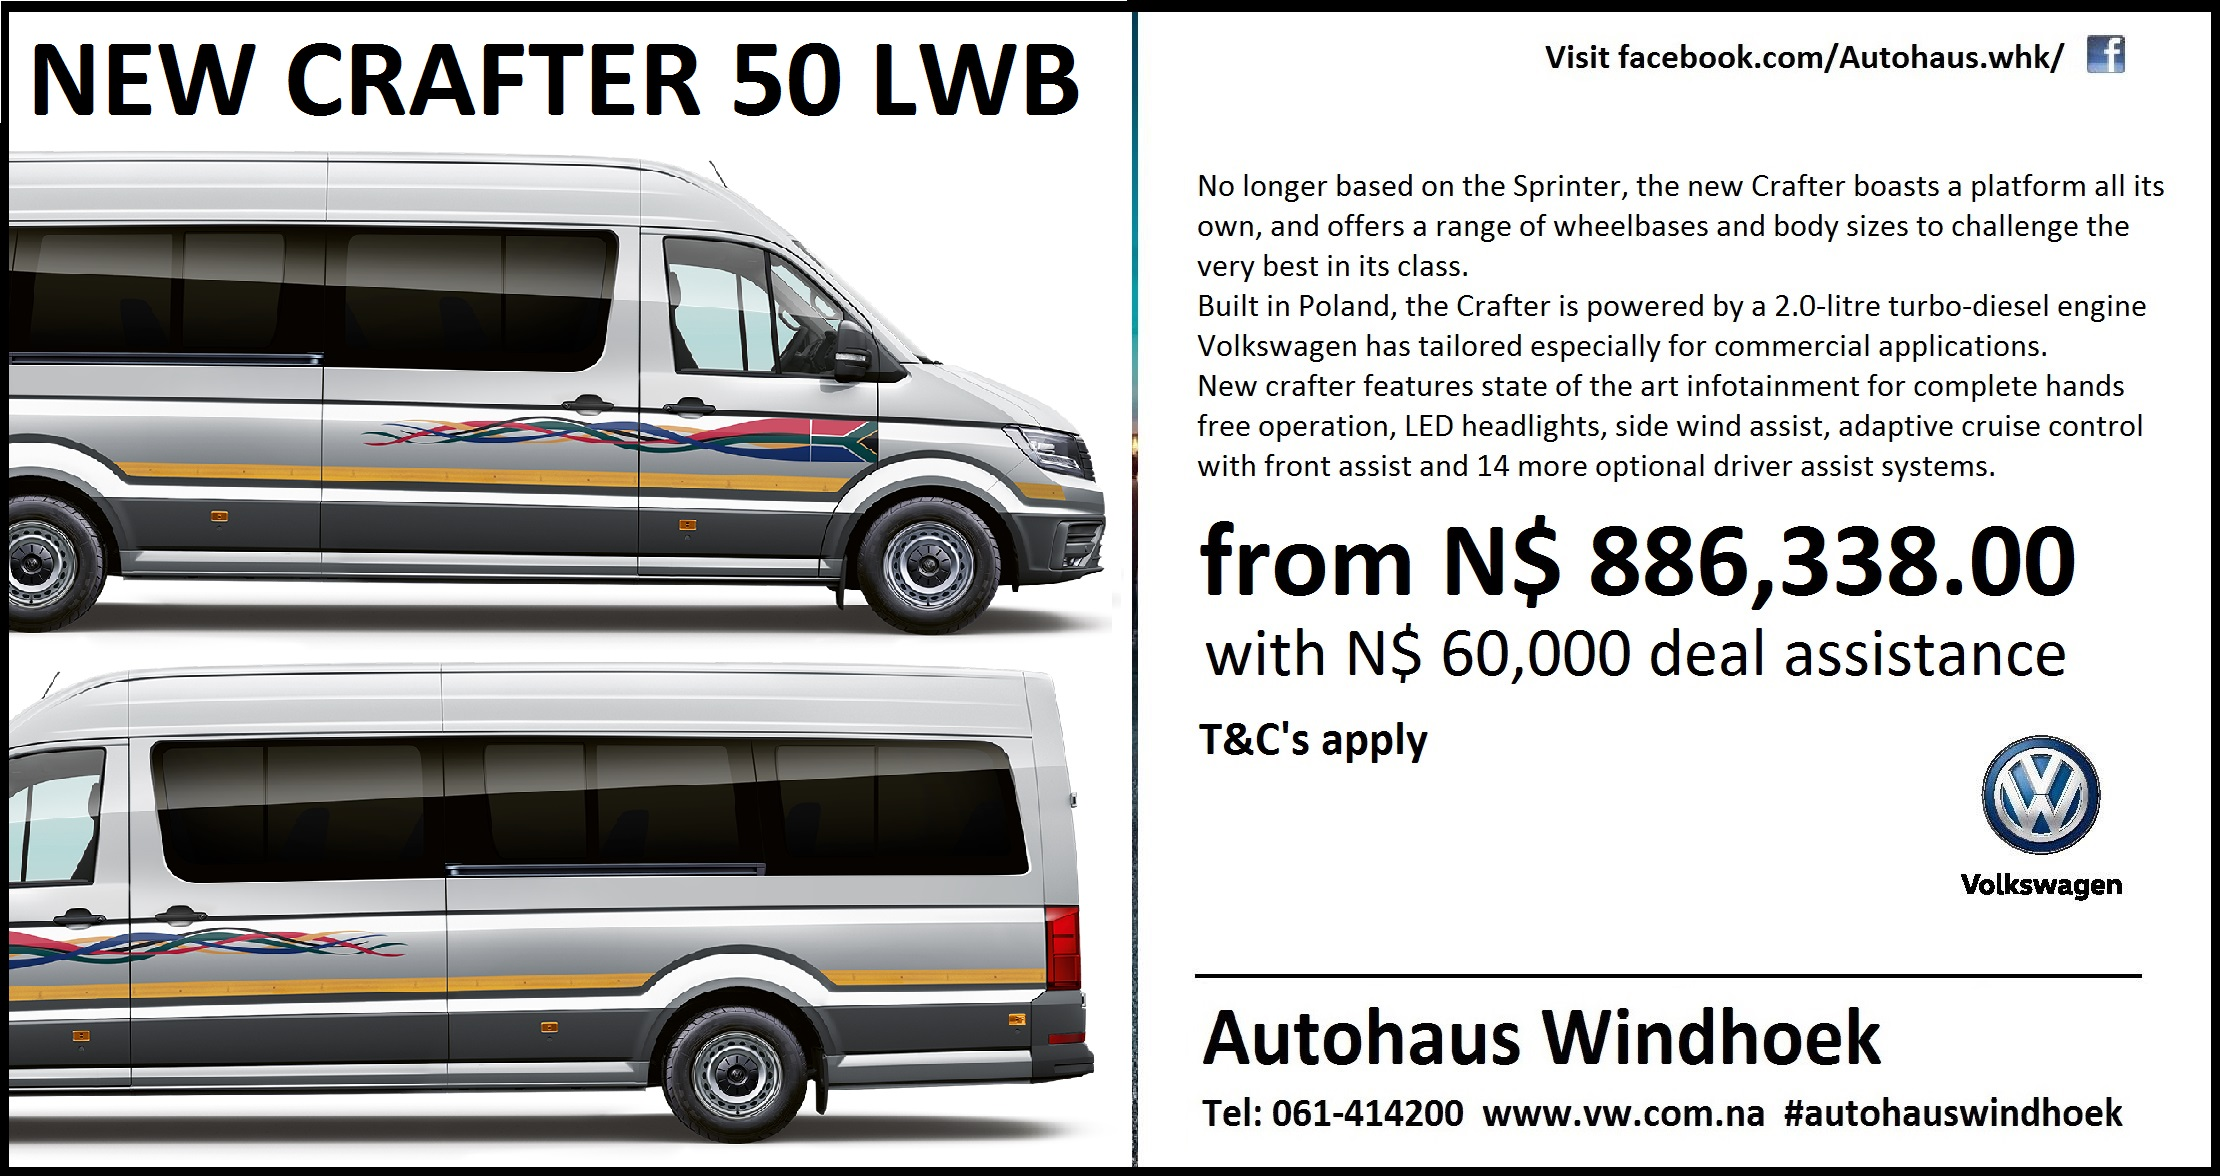 New Crafter 50 LWB